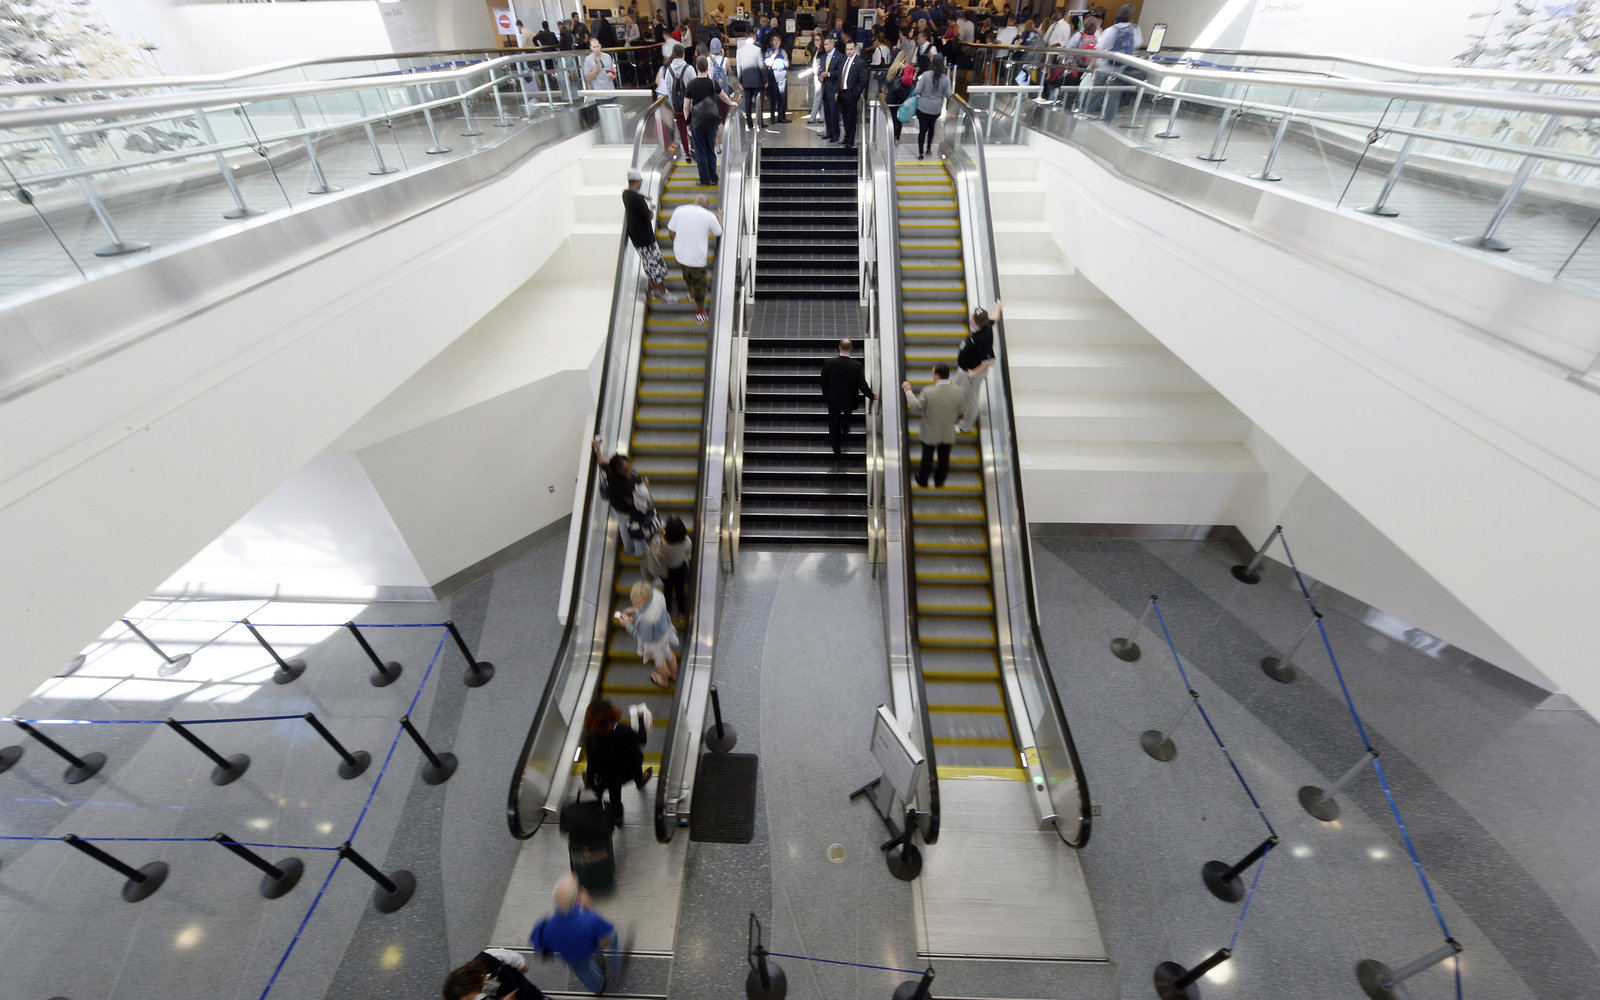 Recent Passengers at LAX, Denver Airport May Have Been Exposed to Measles